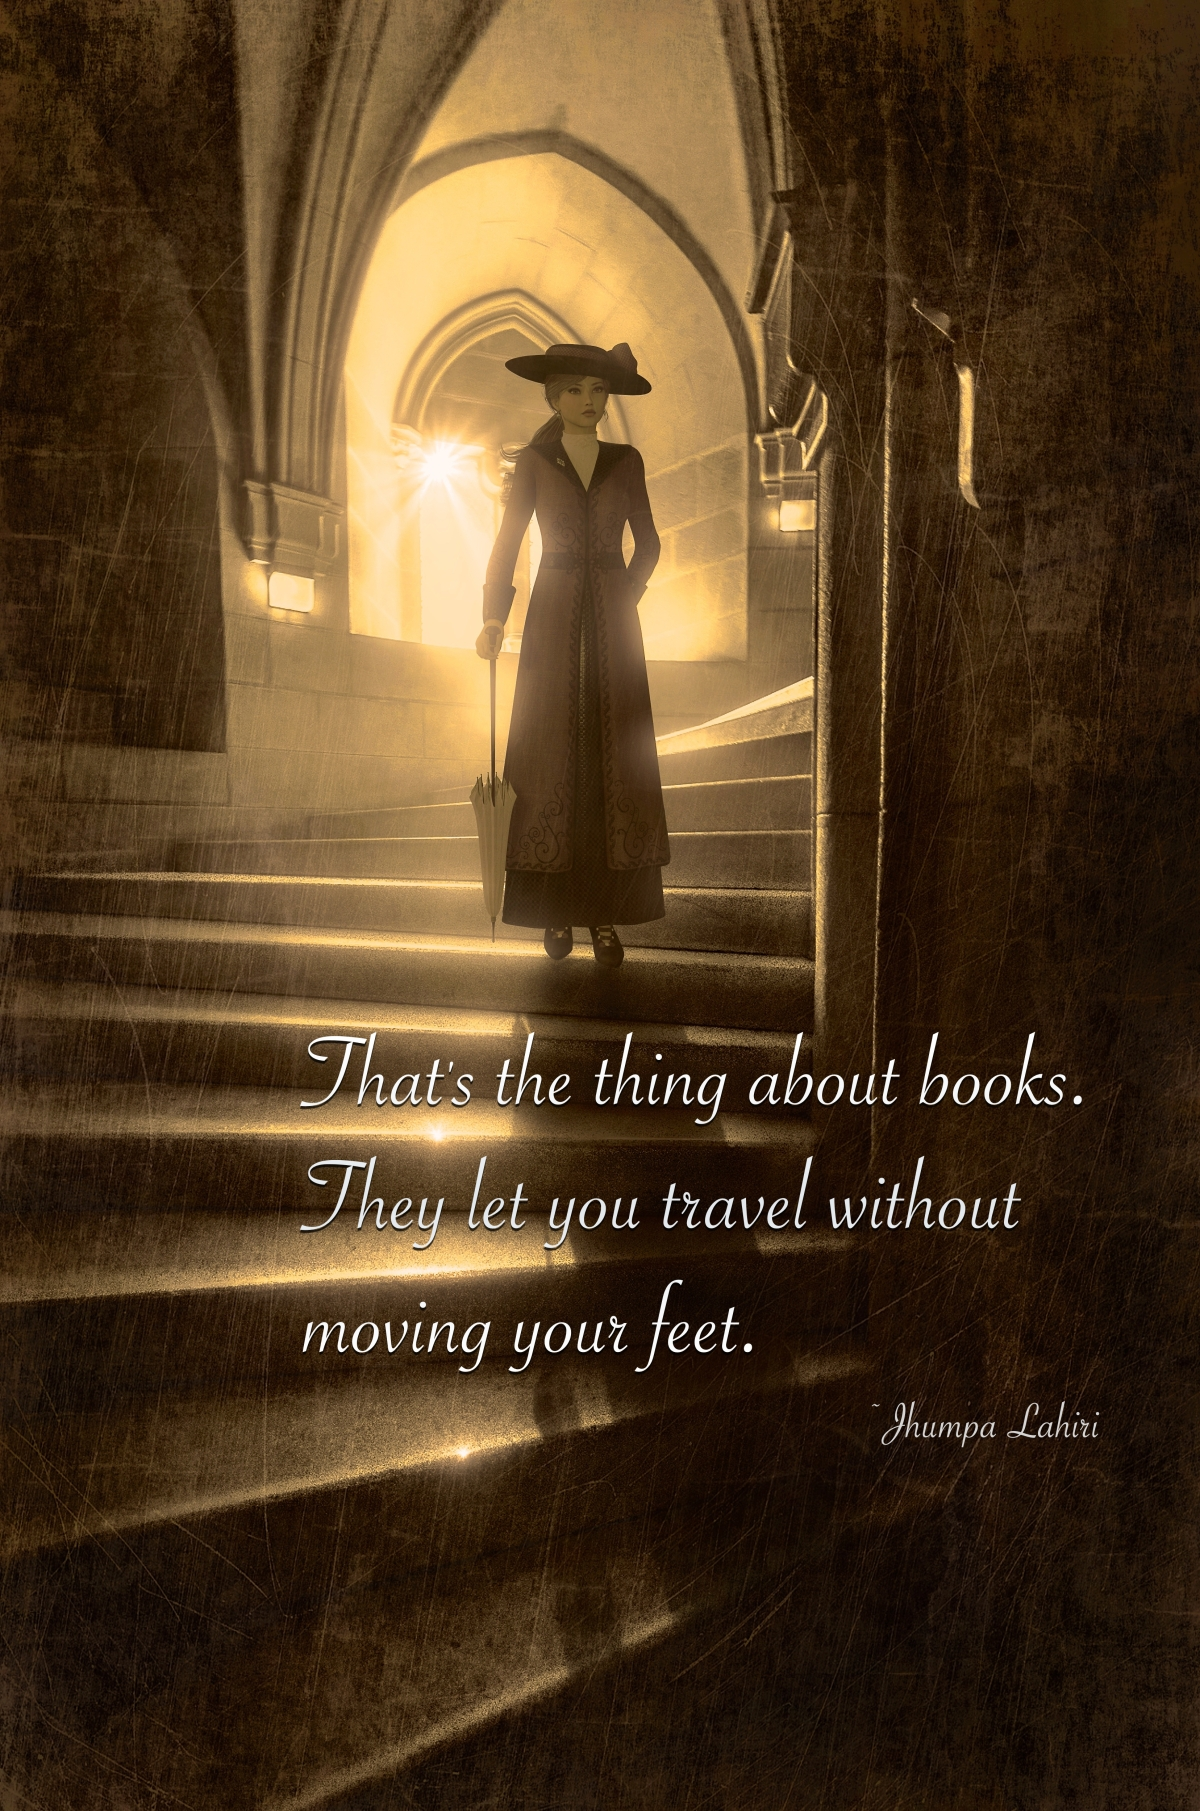 That's the thing about books. They let you travel without moving your feet. #Books#quotes